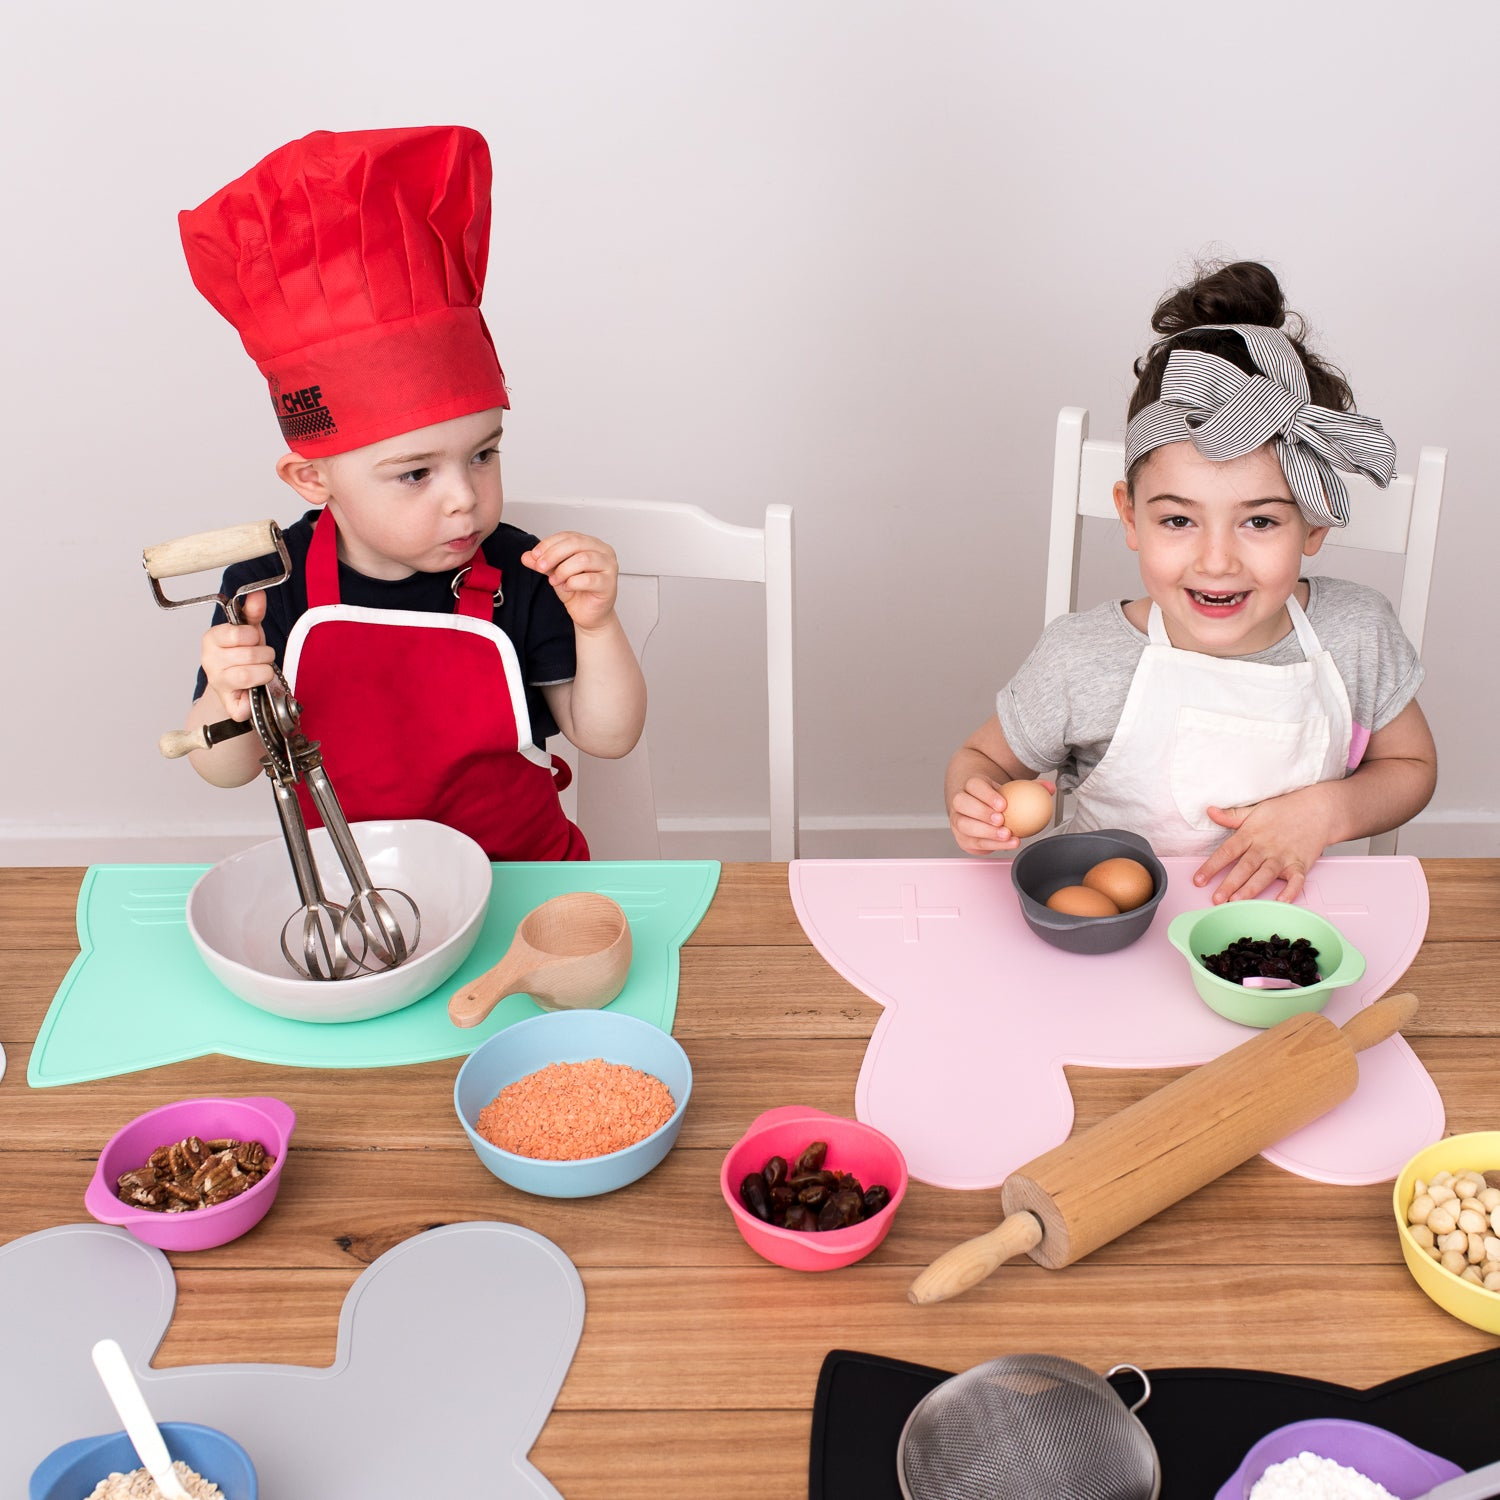 Silicone placemats perfect for baking with kids